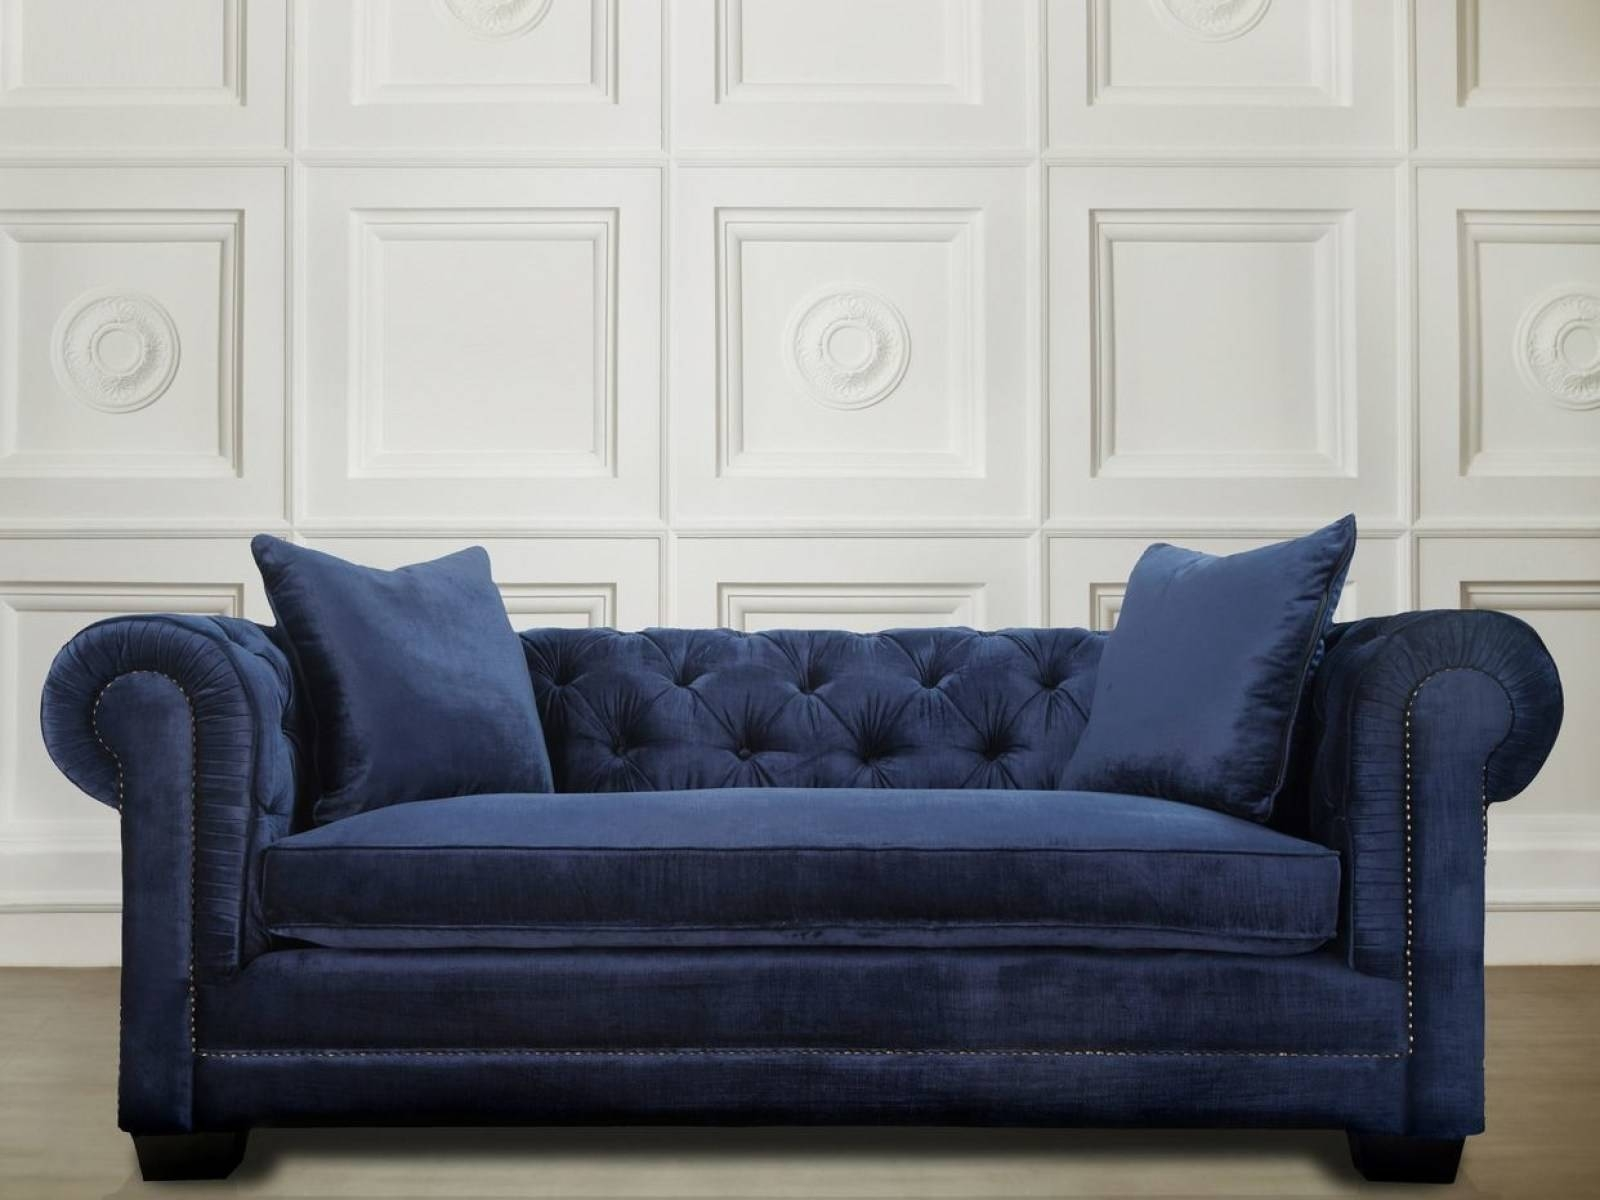 ☆▻ Sofa : 11 Chesterfield Leather Sofa In Red Plus Nailhead Trim with regard to Small Chesterfield Sofas (Image 30 of 30)